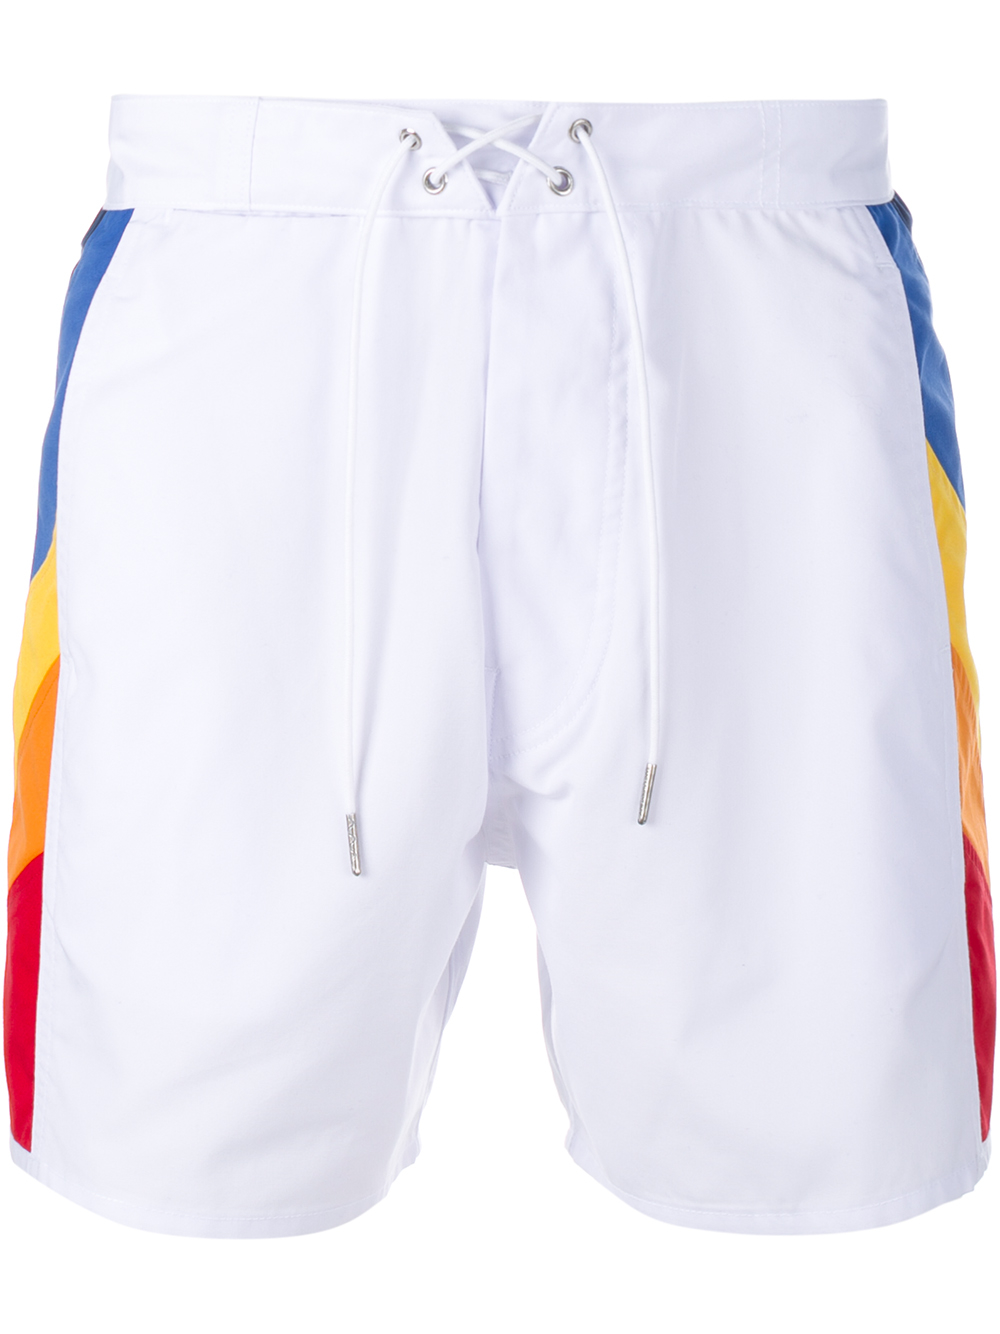 ddcf47d262 Saint Laurent Swimming Trunks With Rainbow Side Panels in White for ...